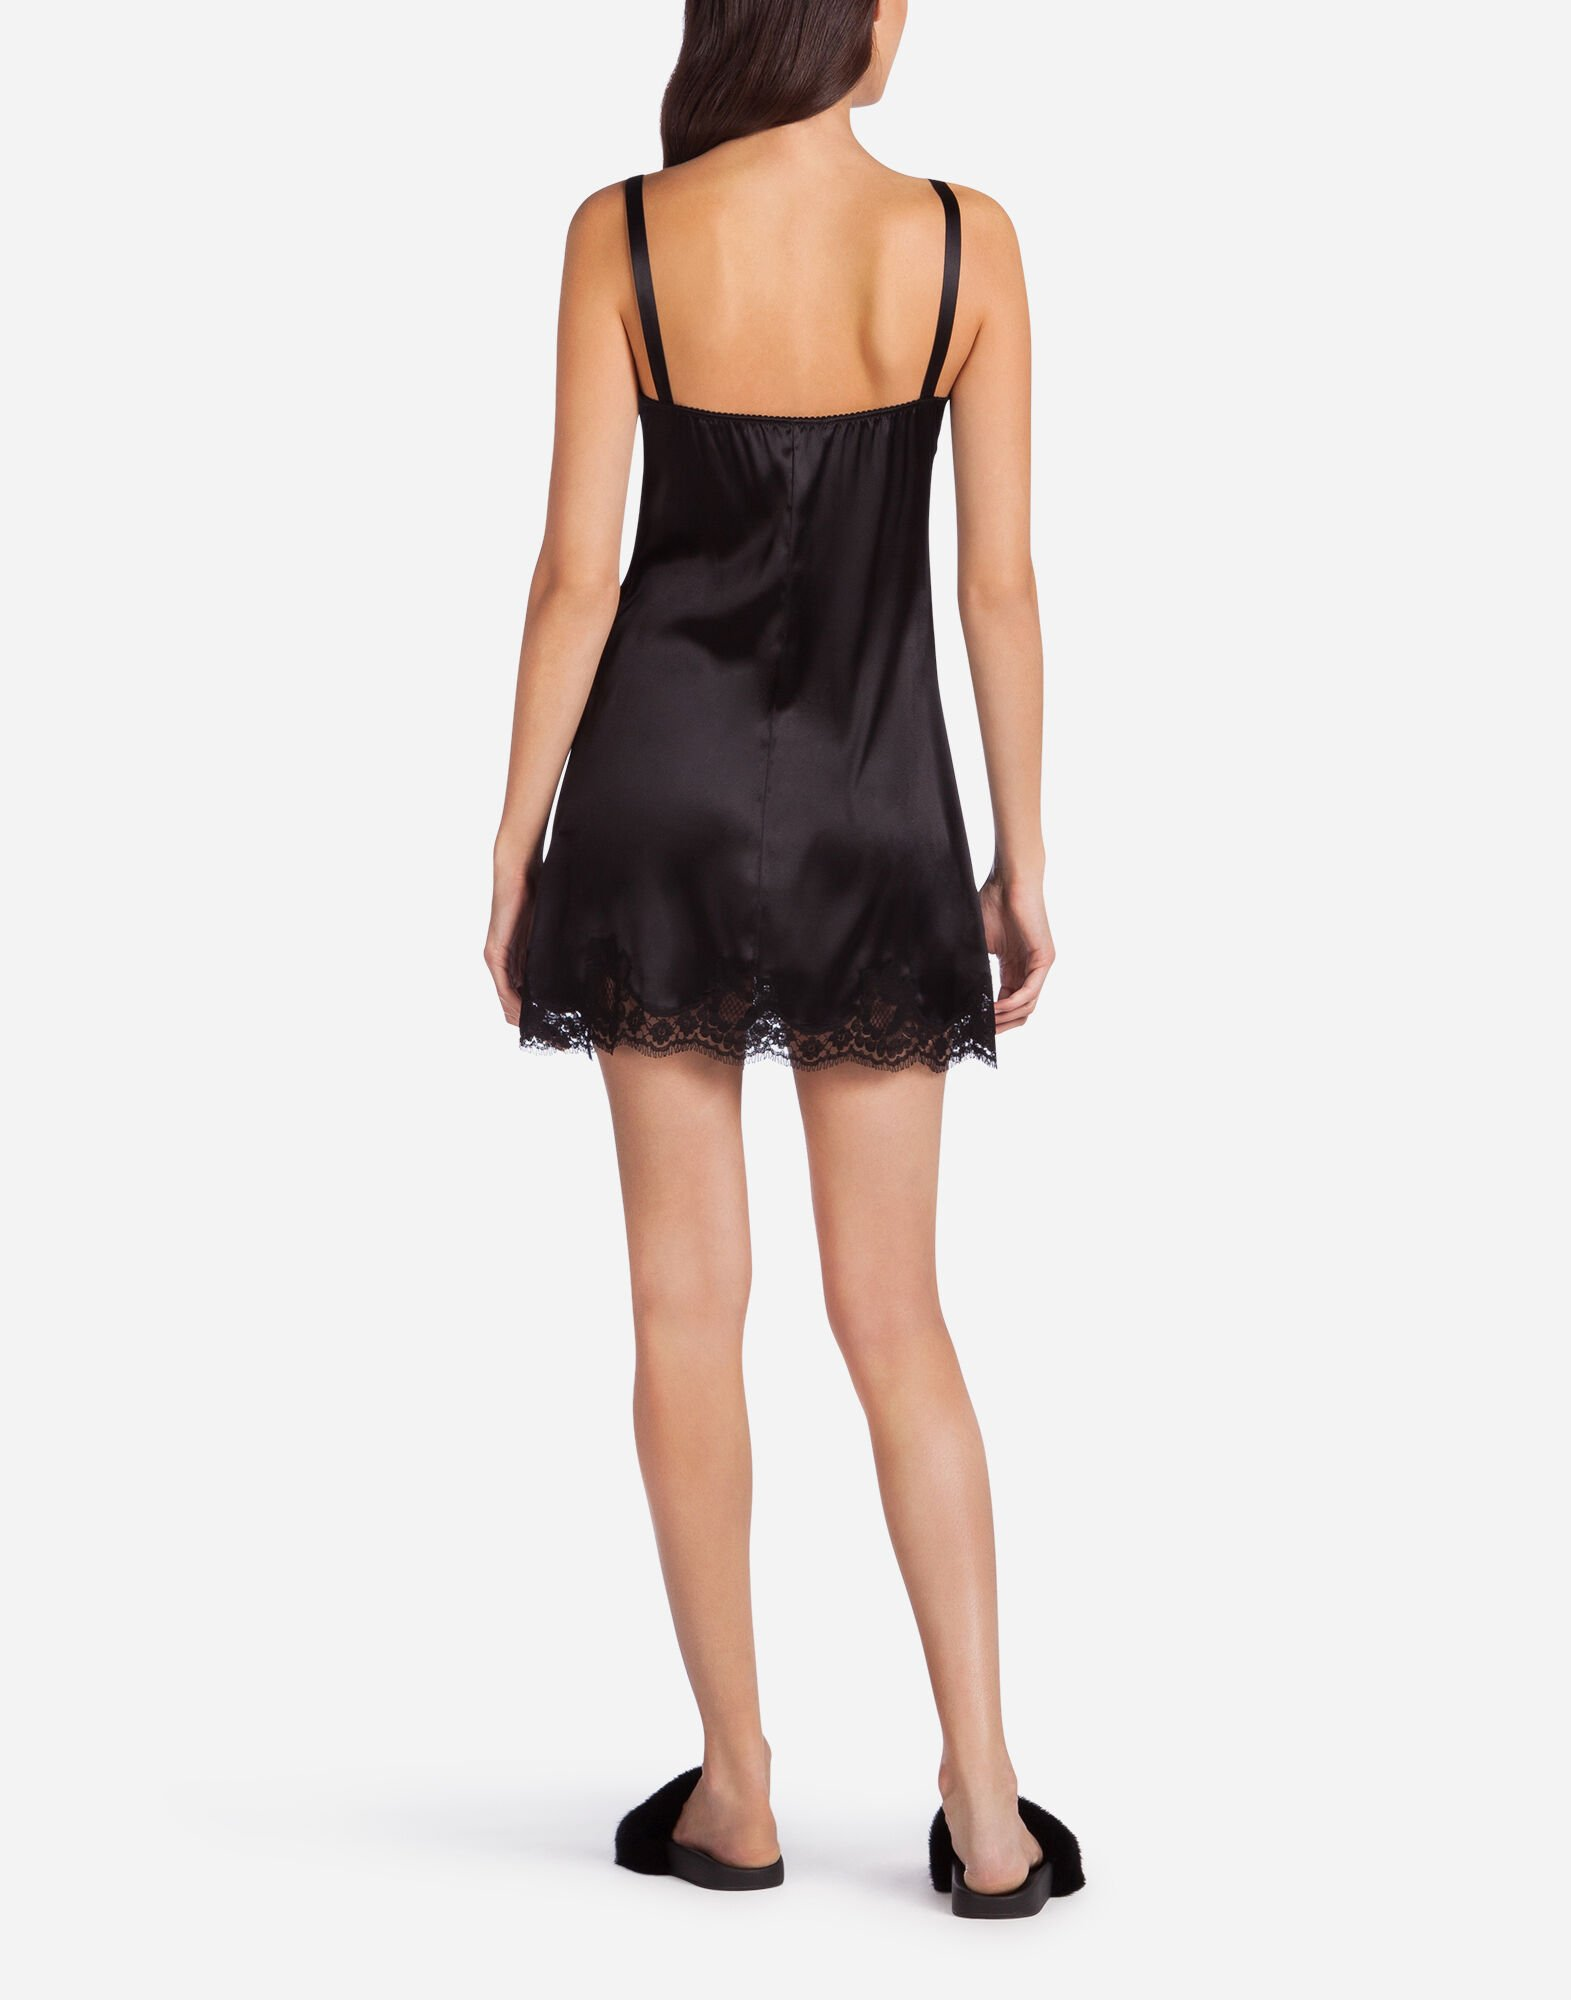 TOP IN SATIN WITH LACE DETAIL